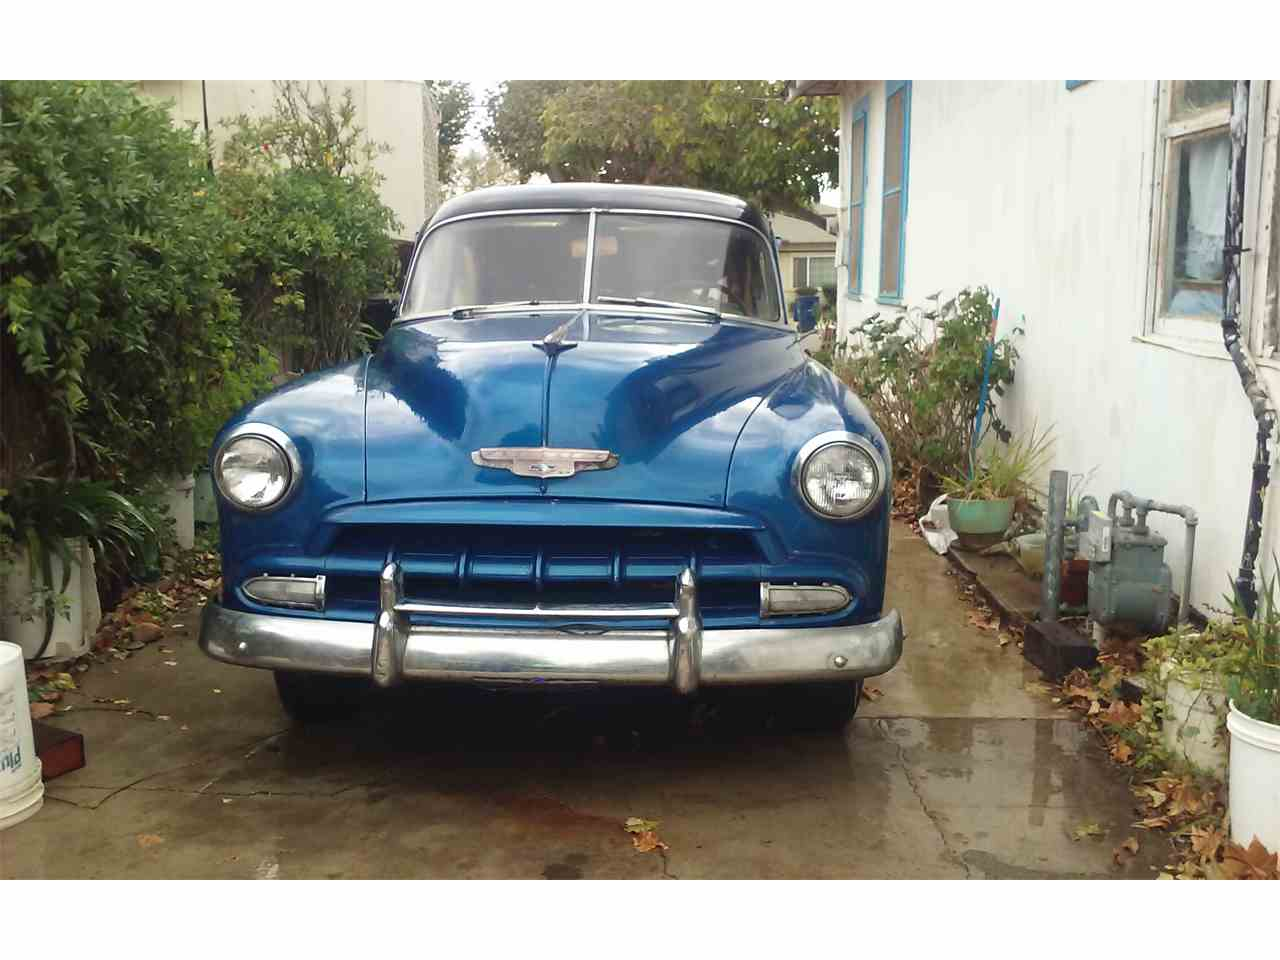 All Chevy 1951 chevy deluxe for sale : 1951 Chevrolet Deluxe for Sale | ClassicCars.com | CC-997939